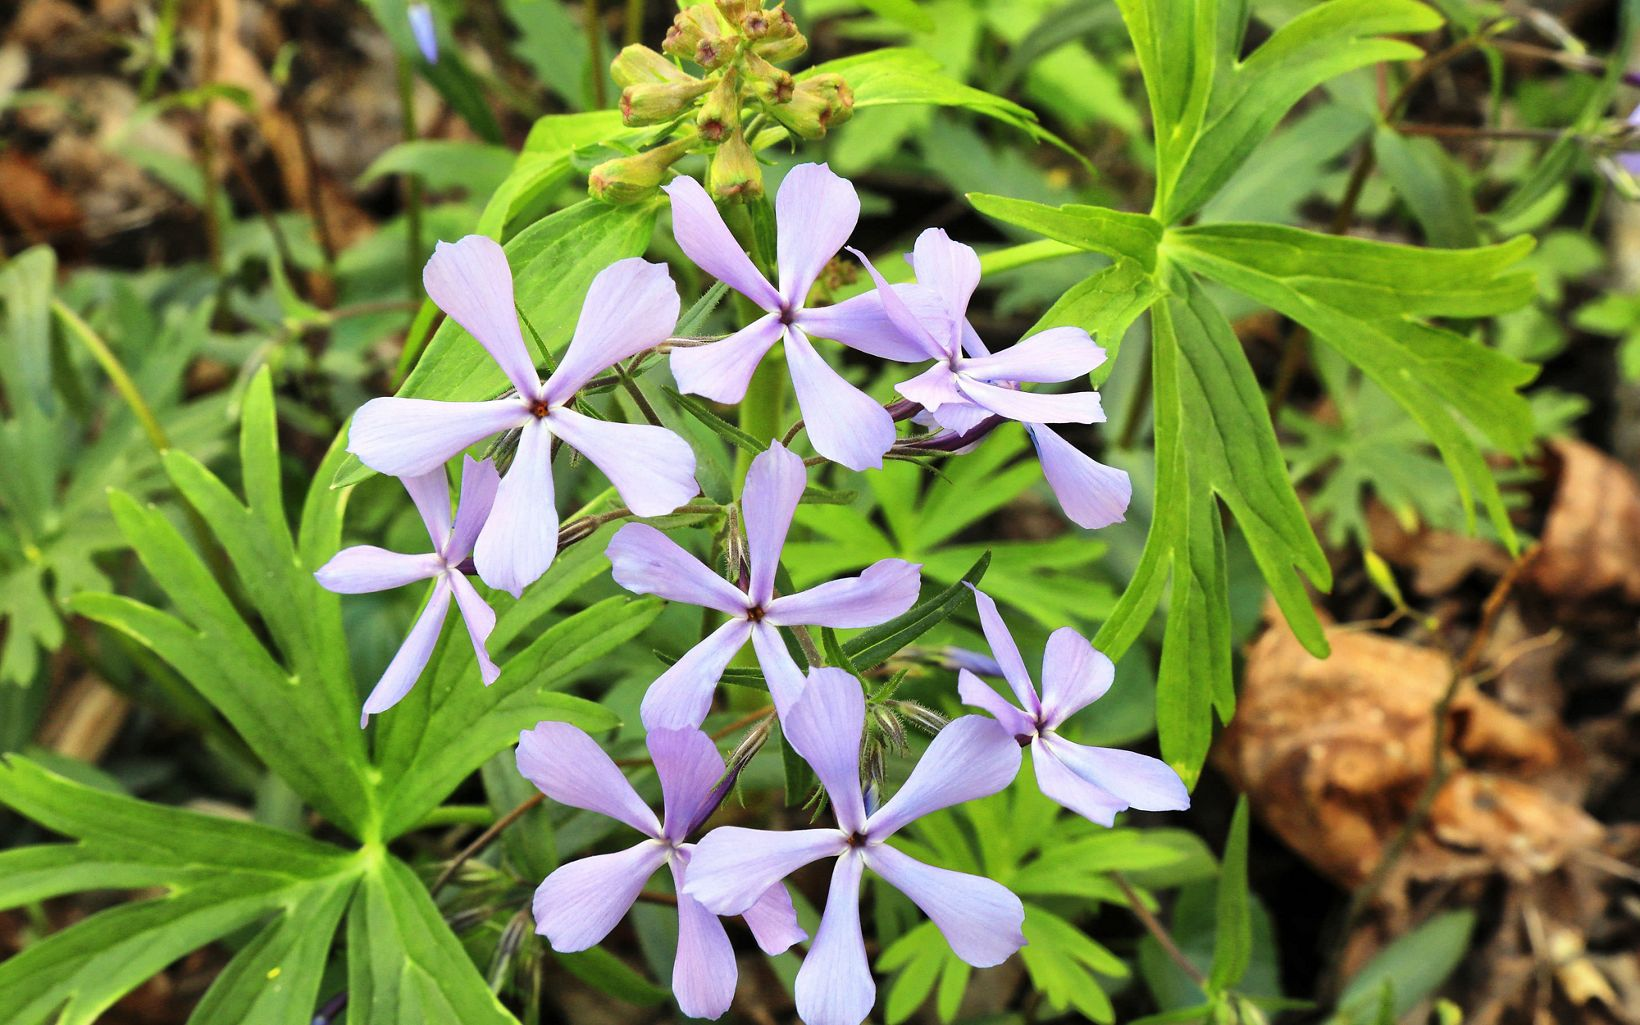 Blue wildflowers emerge from damp spring soils.